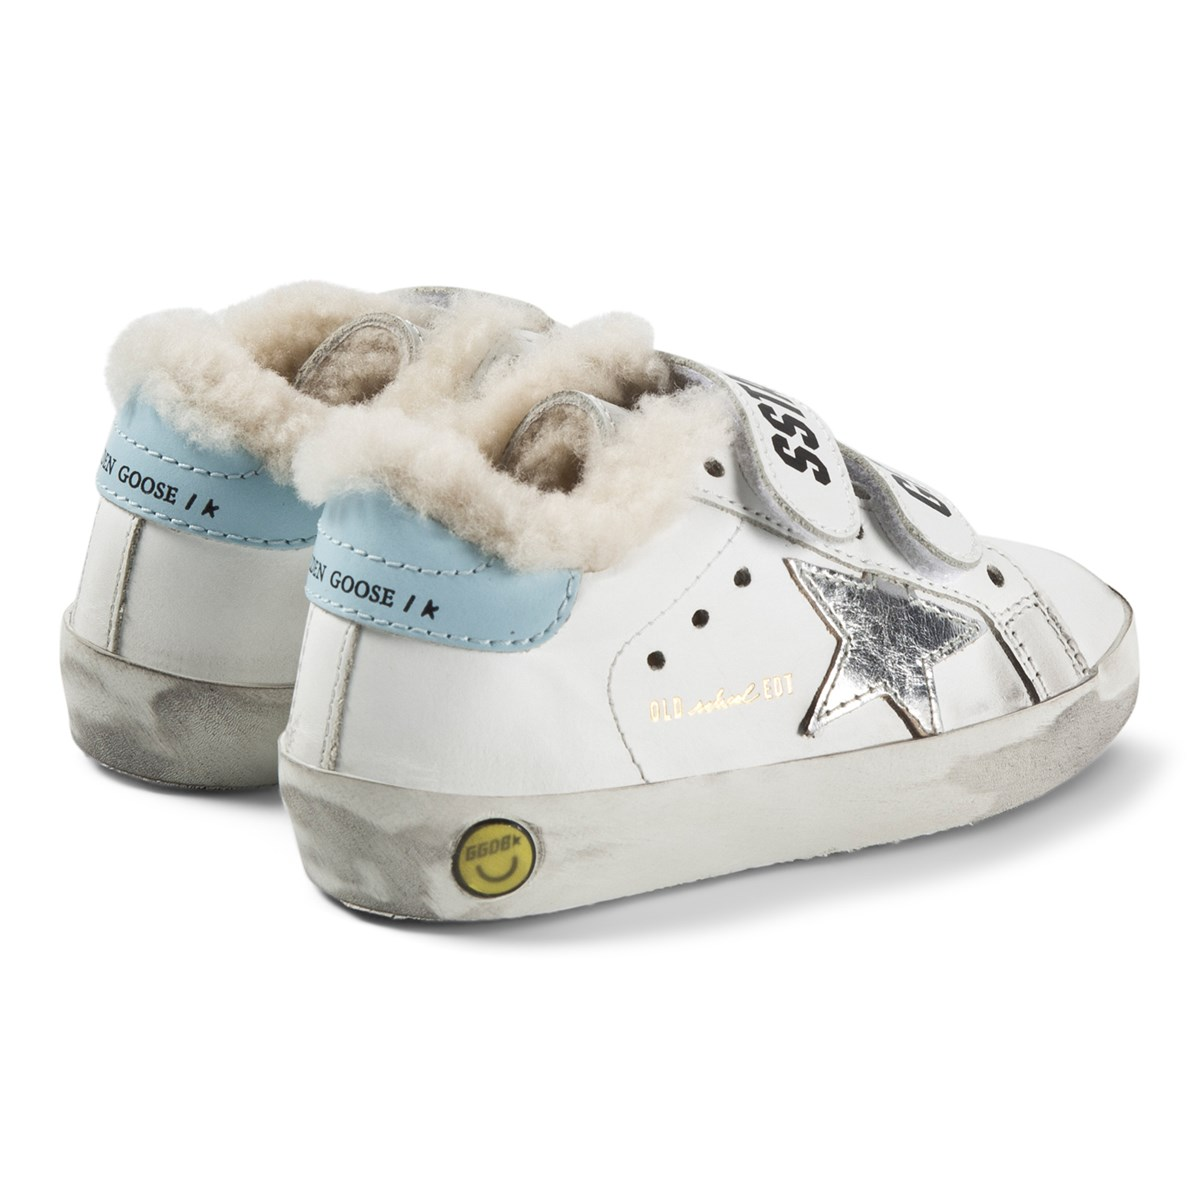 Silver Star Old School Leather Sneakers